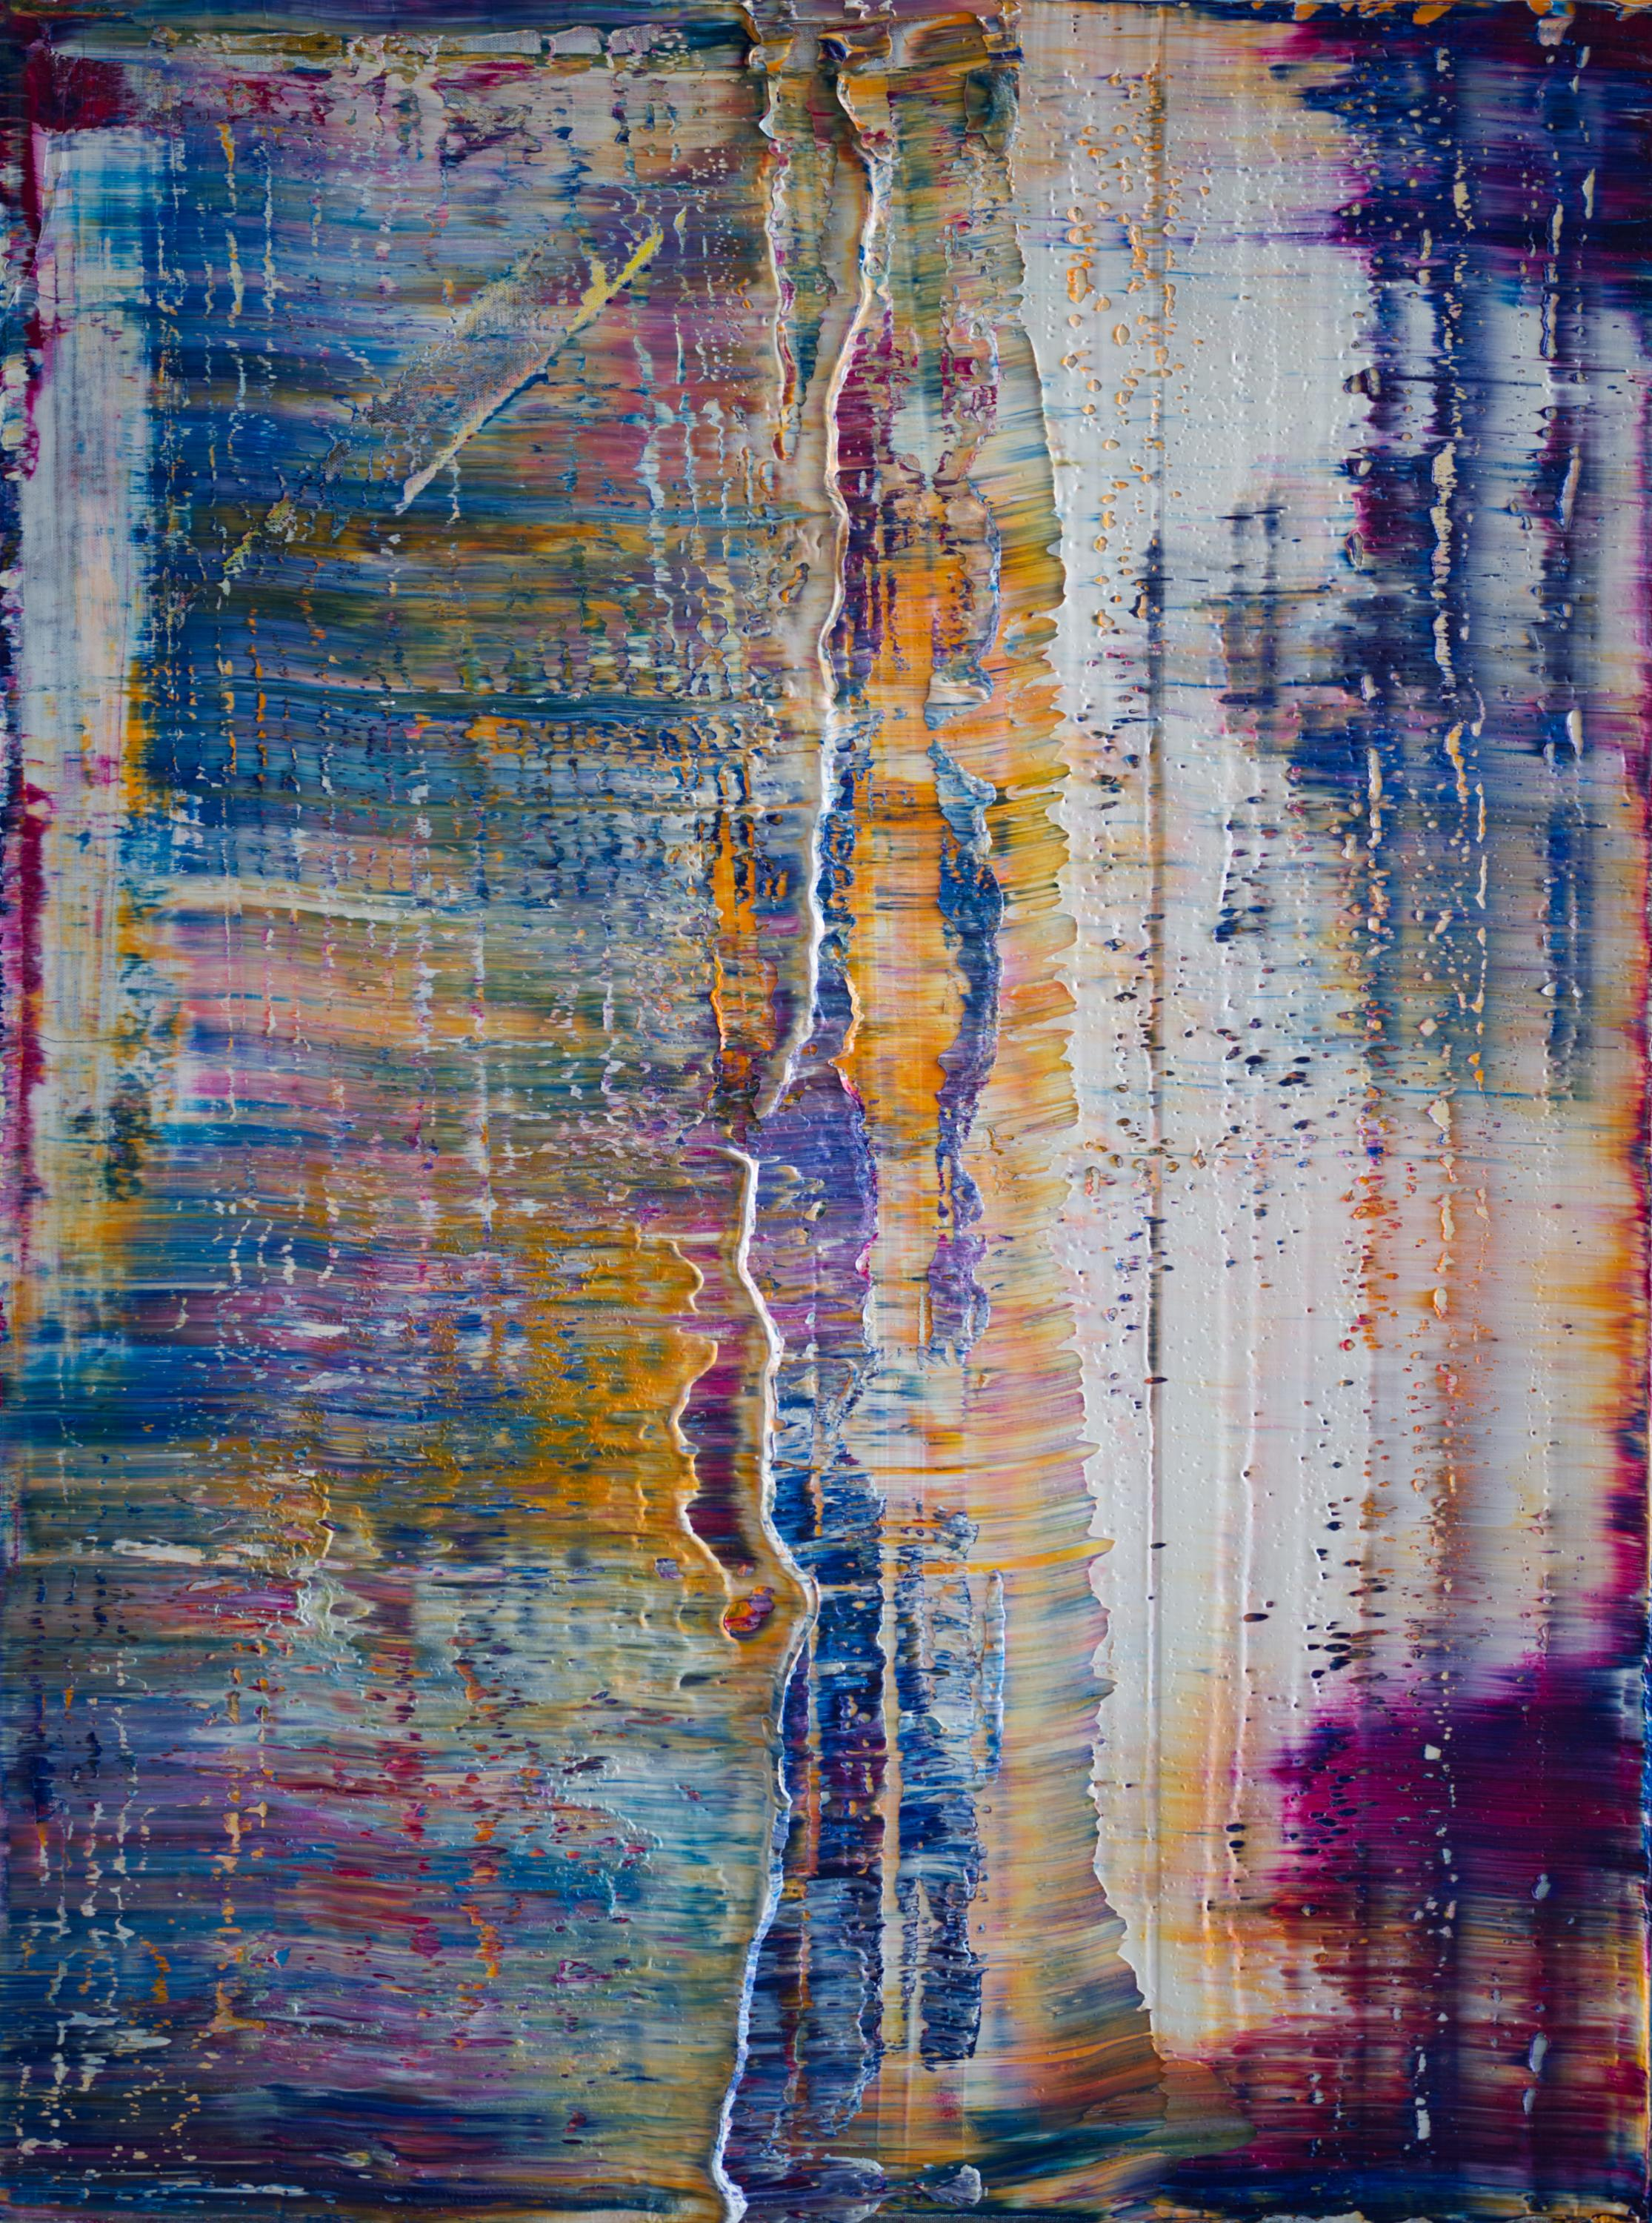 American Contemporary Art by Harry James Moody - Abstract n°545